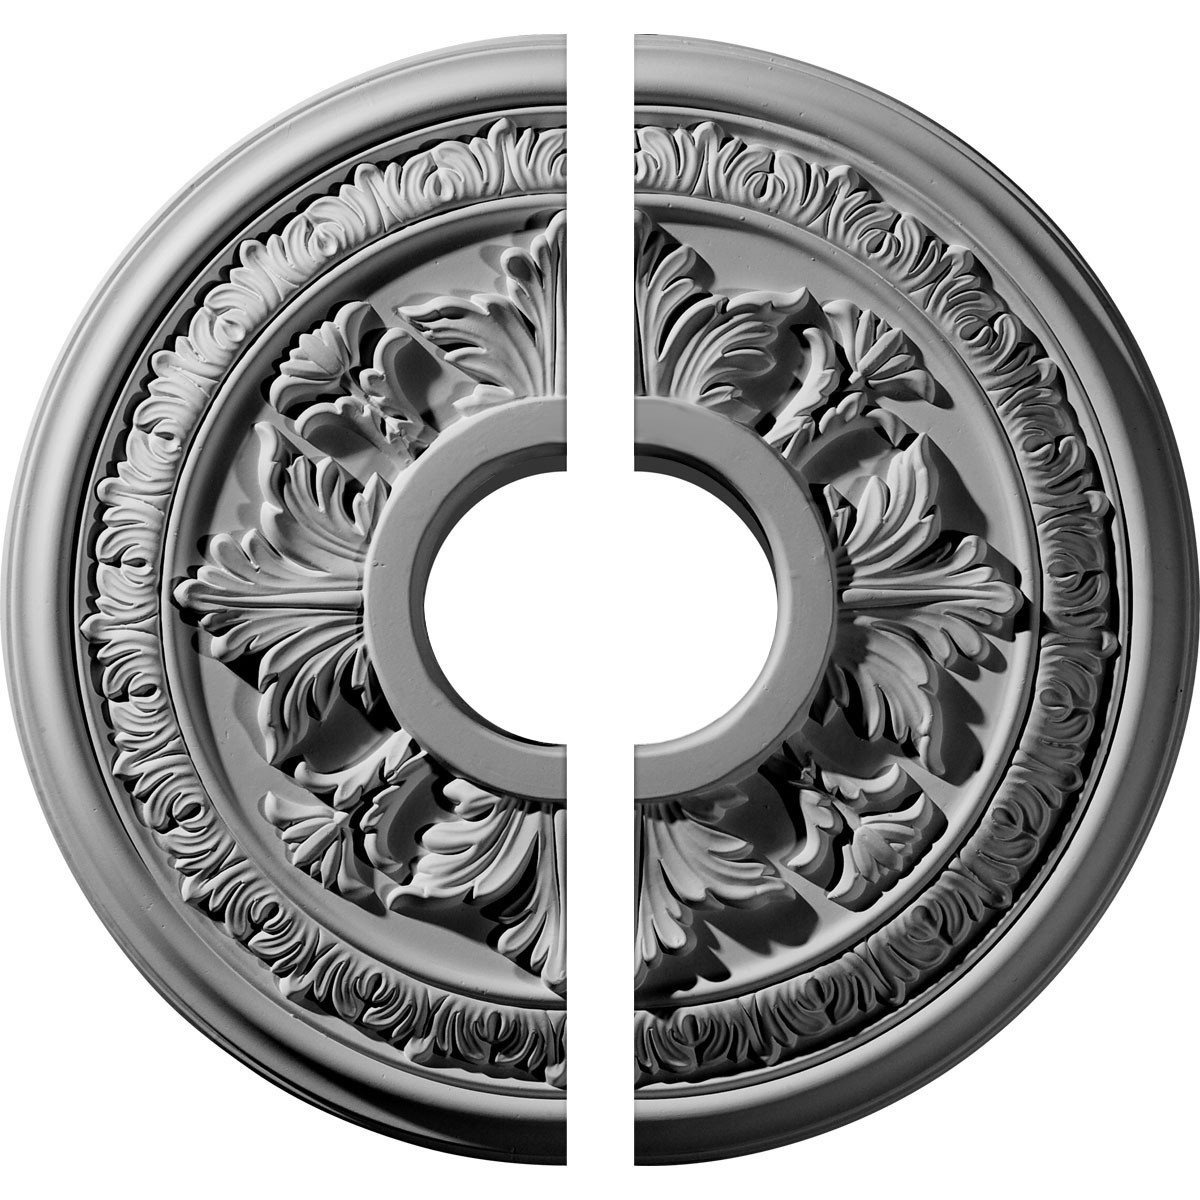 "EM-CM15BA2 - 15 3/8""OD x 4 1/4""ID x 1 1/2""P Baltimore Ceiling Medallion, Two Piece (Fits Canopies up to 5 1/2"")"